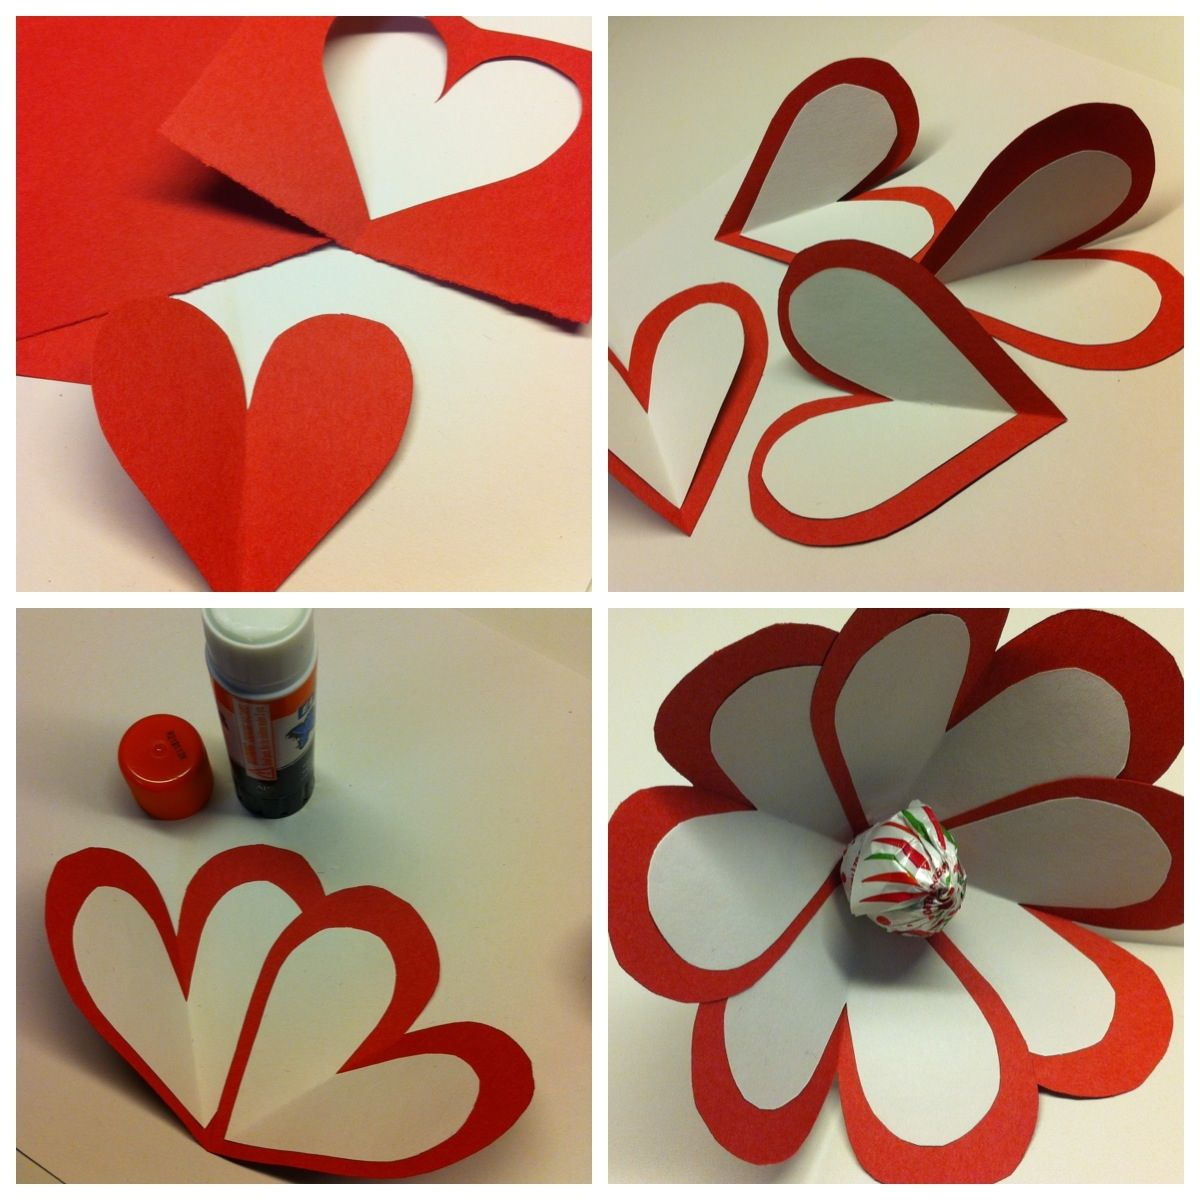 Valentine craft party ideas valentines day kids crafts ideas for valentine craft party ideas valentines day kids crafts ideas for kids i love youpicture and jeuxipadfo Gallery